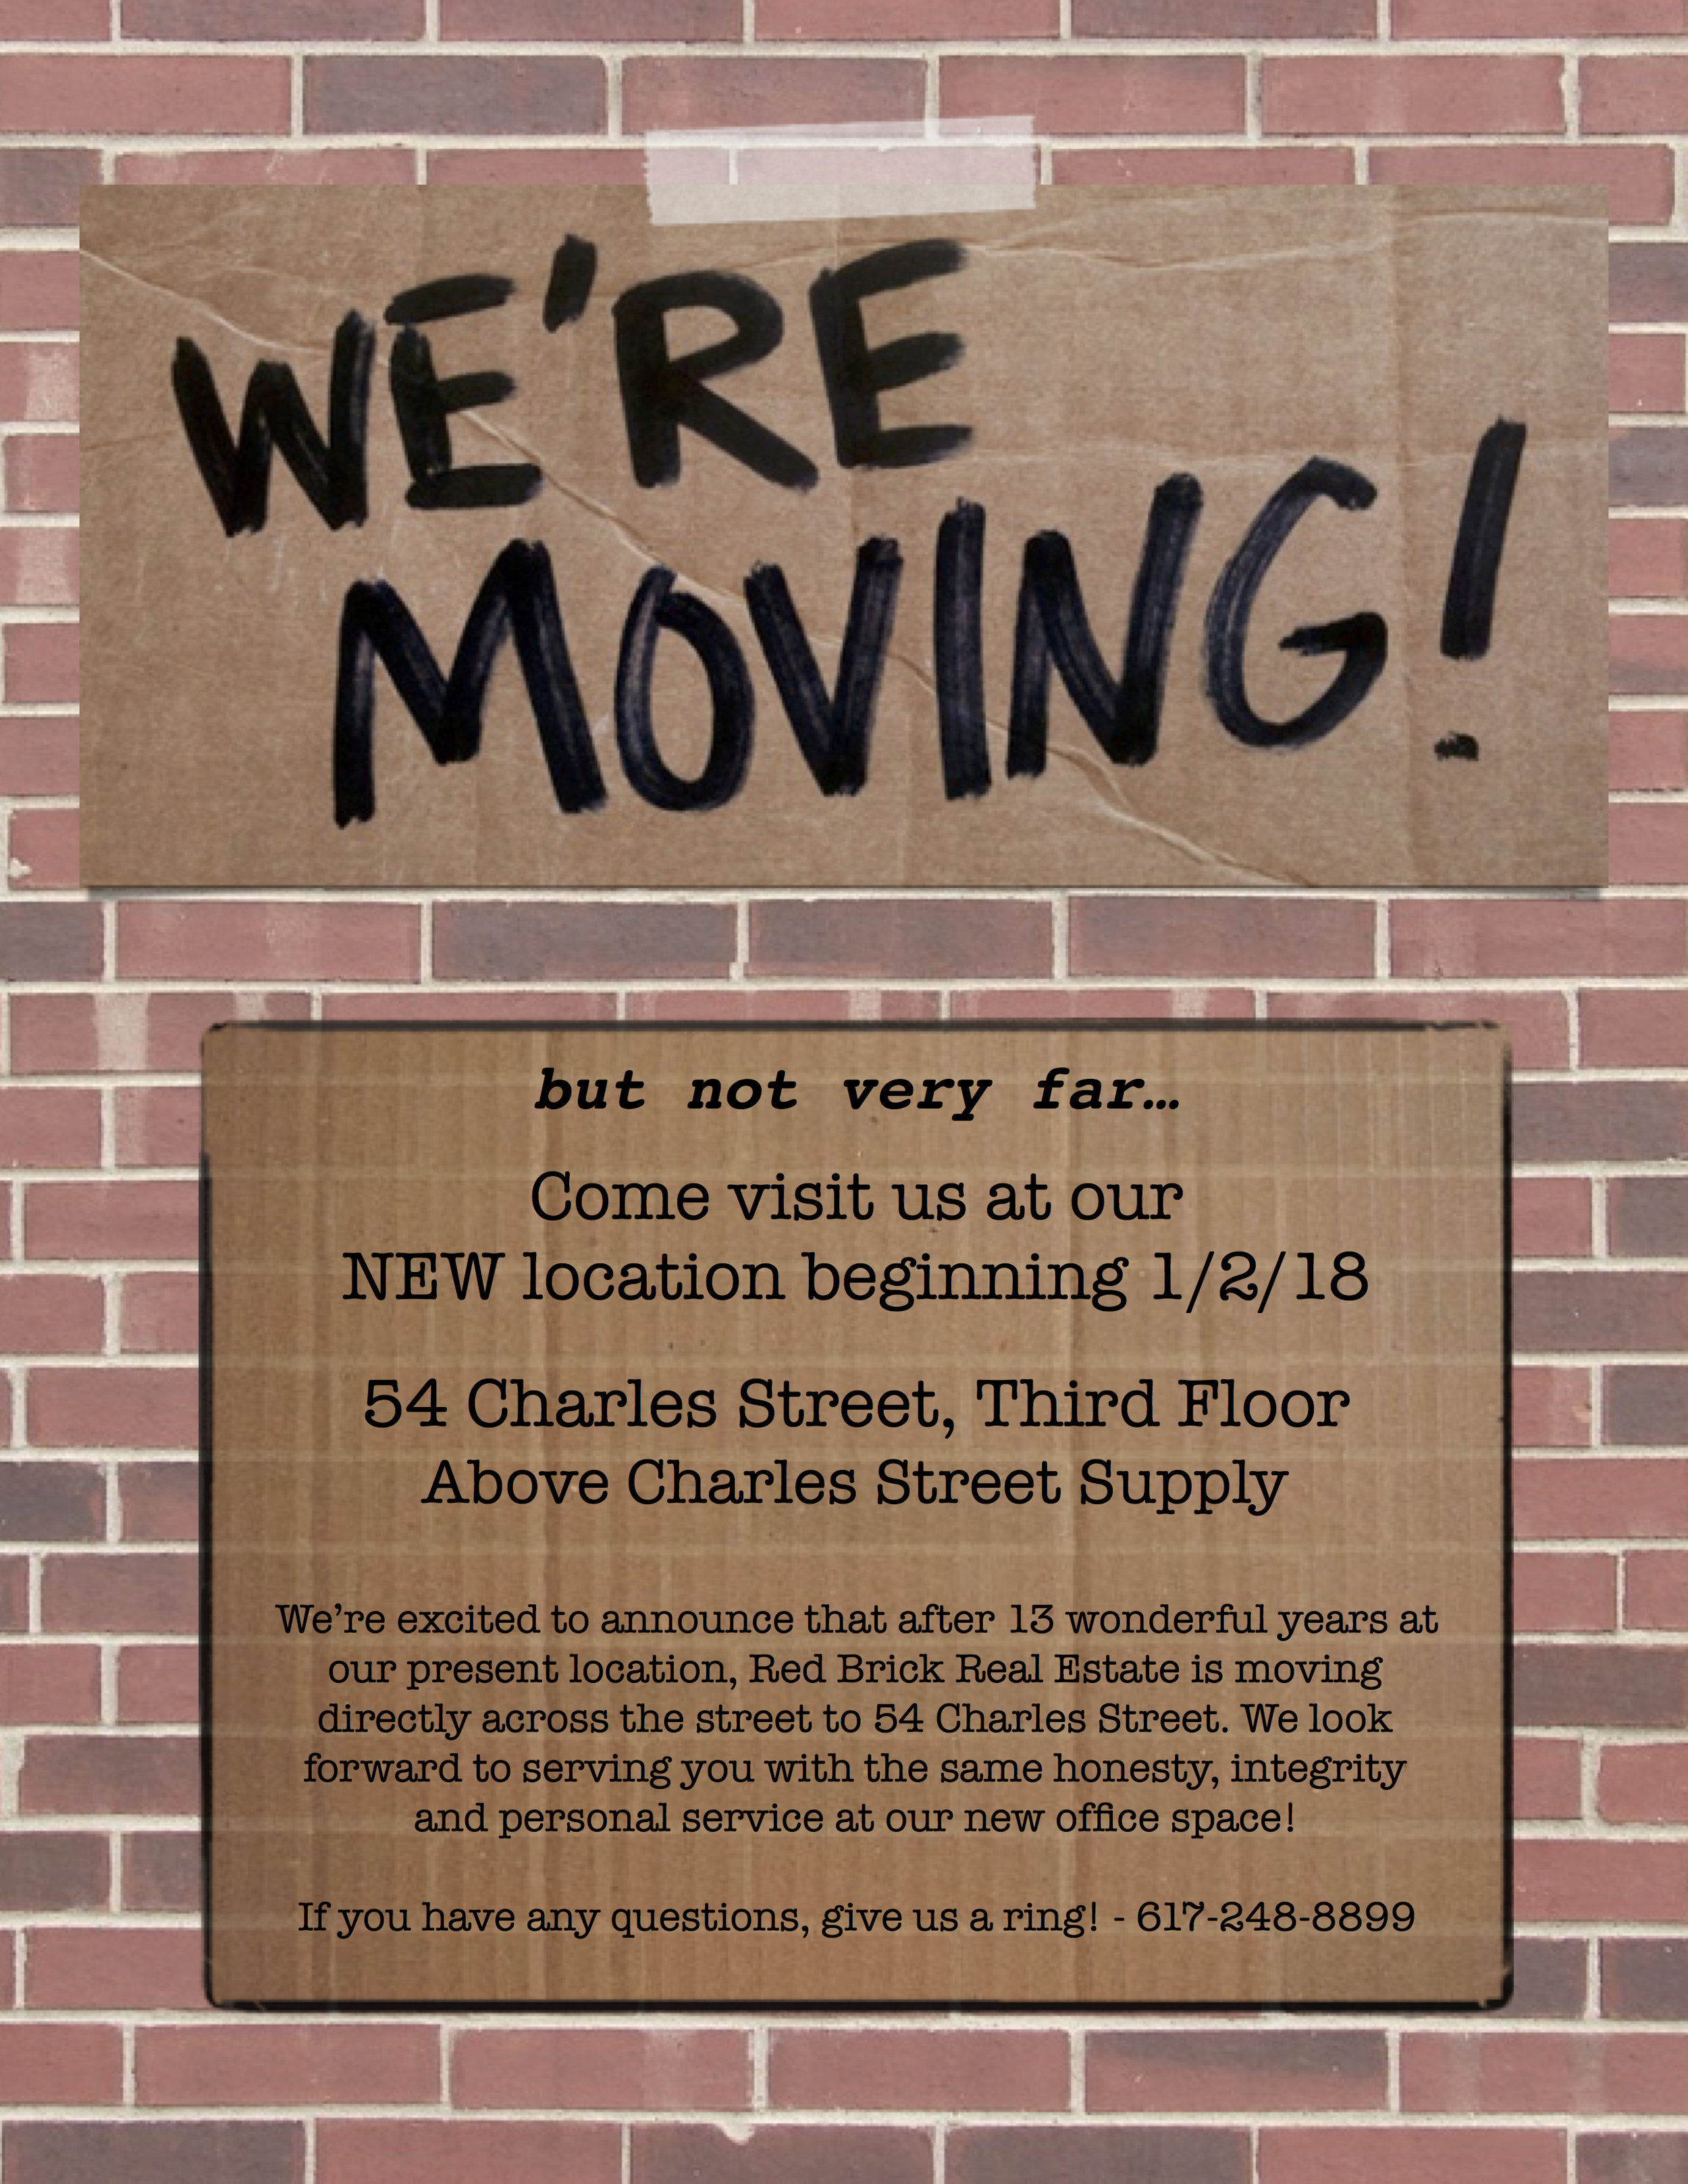 After 13 wonderful years at our present location, Red Brick Real Estate is moving to a larger location across the street at 54 Charles Street (Above Charles Street Supply). Come visit us at our new location in the new year!